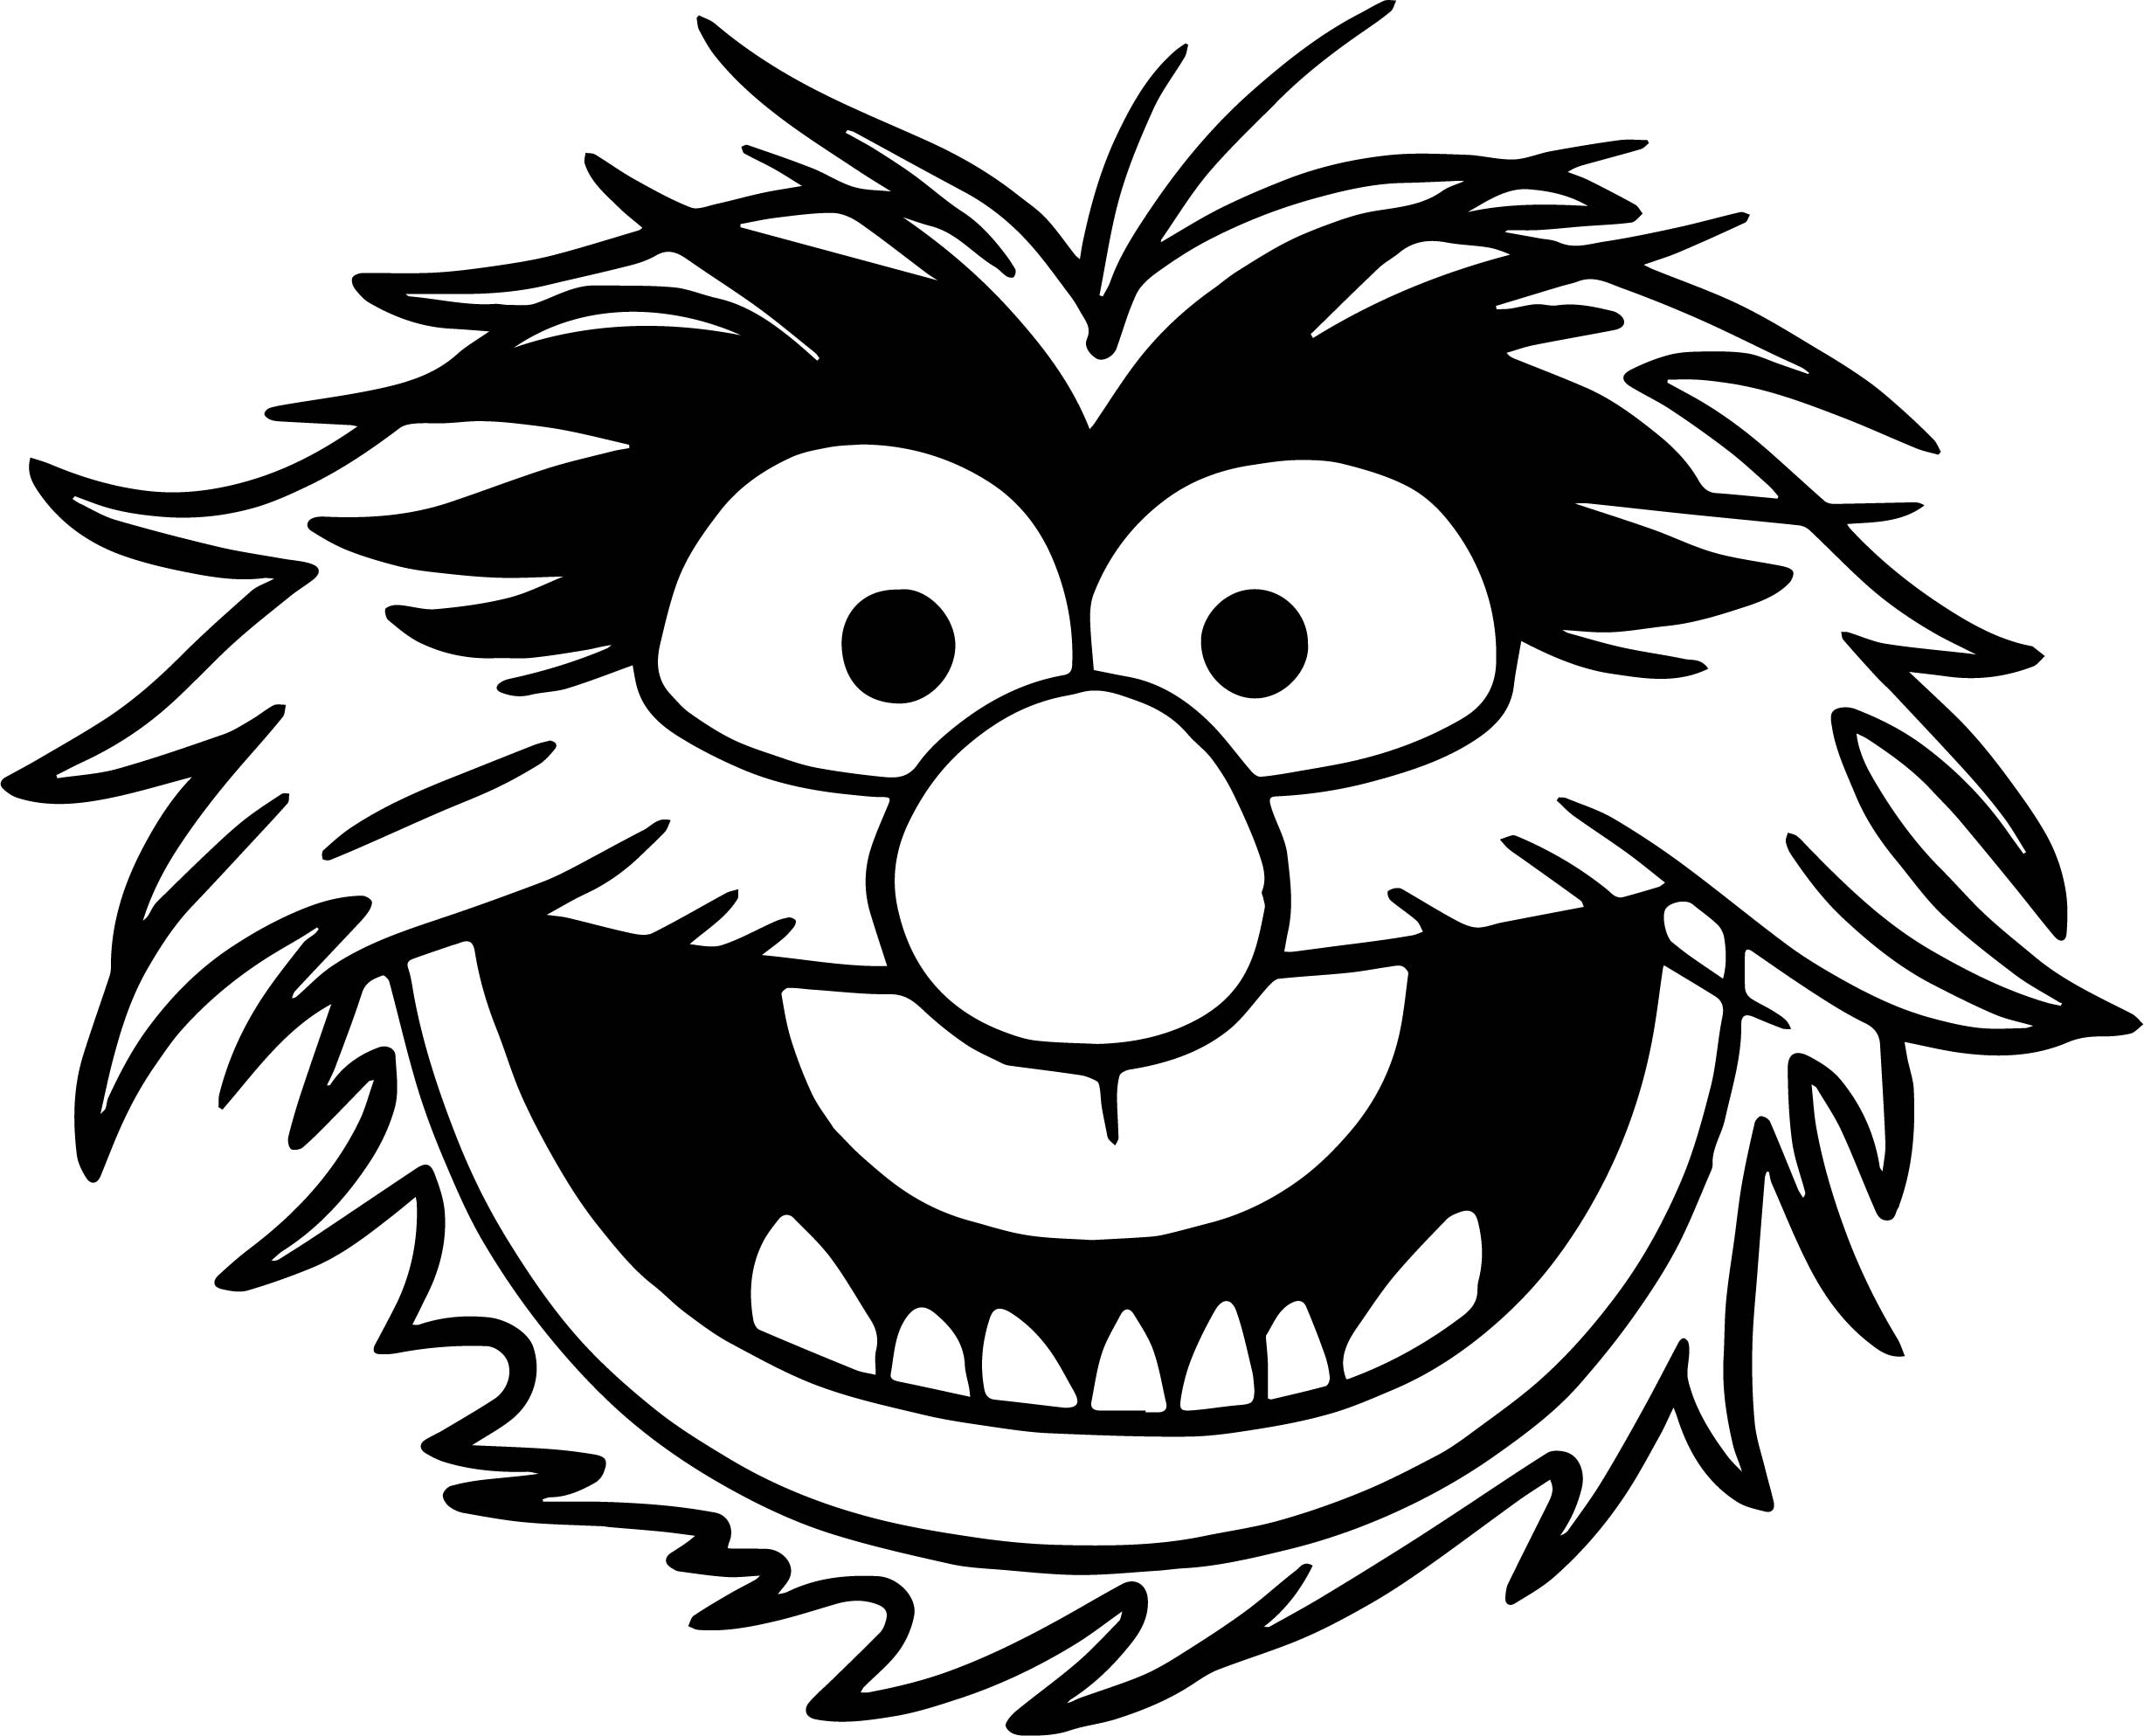 Animal muppet clipart vector black and white stock Collection of Muppets clipart   Free download best Muppets clipart ... vector black and white stock